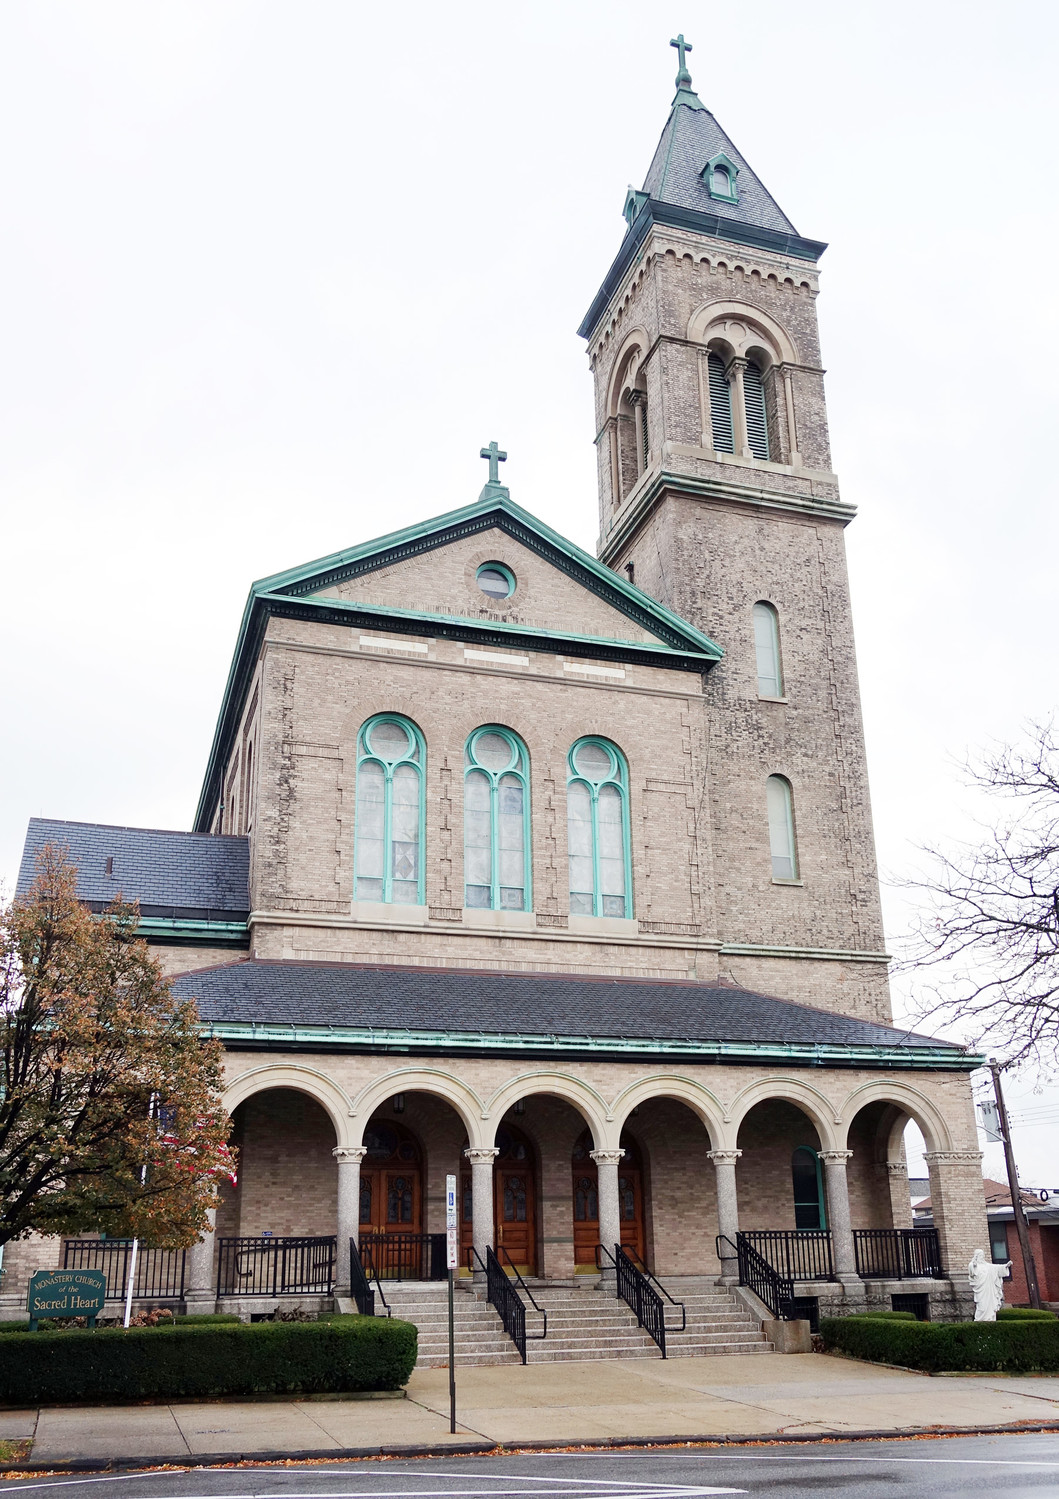 An exterior view of Sacred Heart Church.